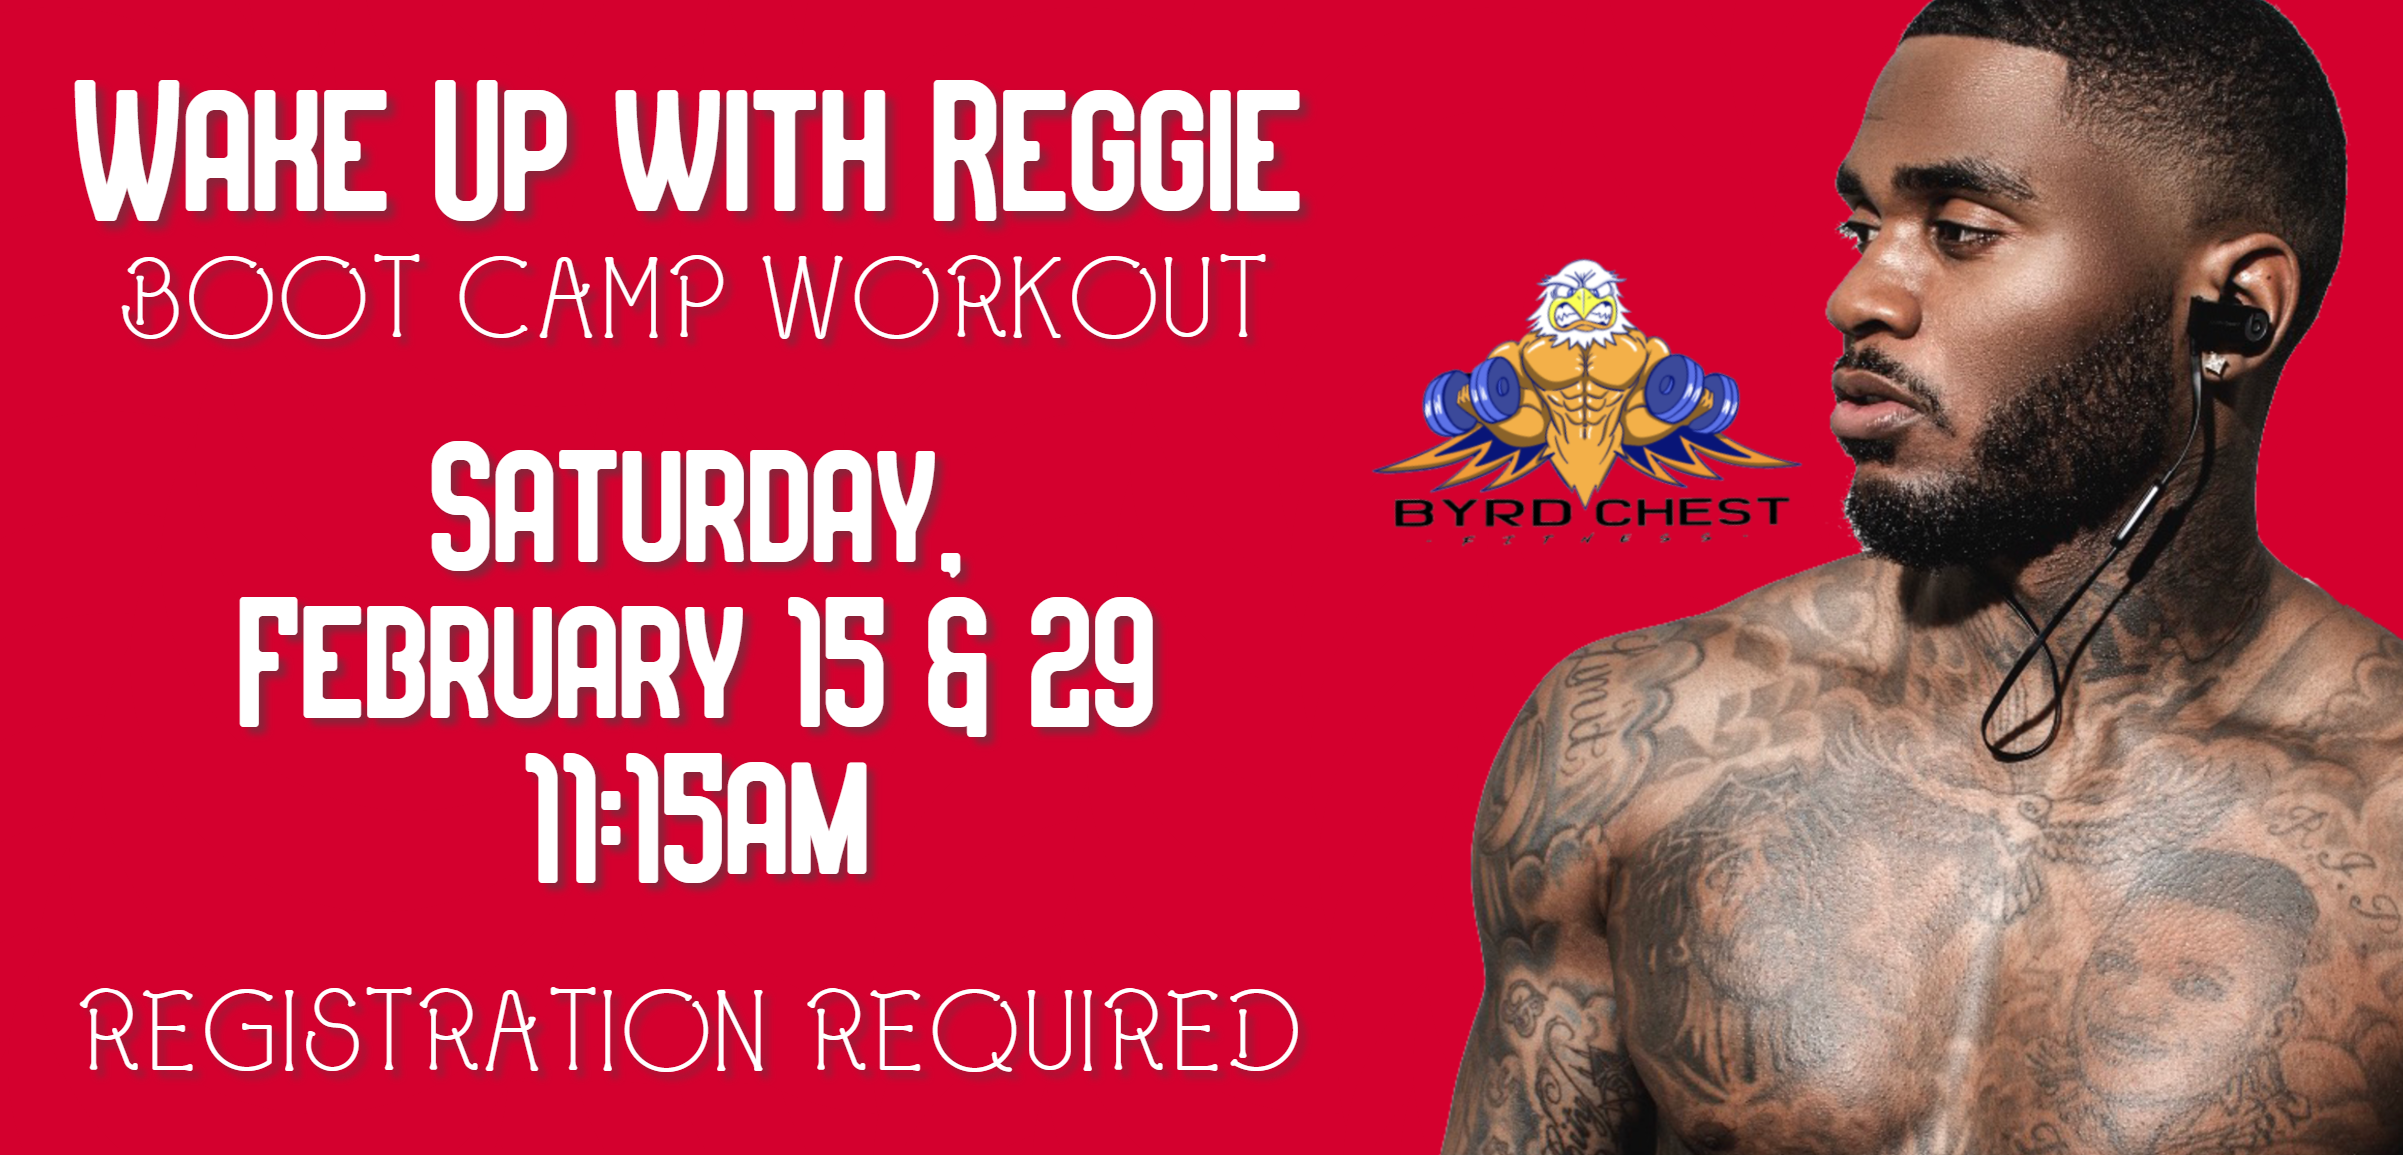 Wake up with Reggie: Boot camp workout